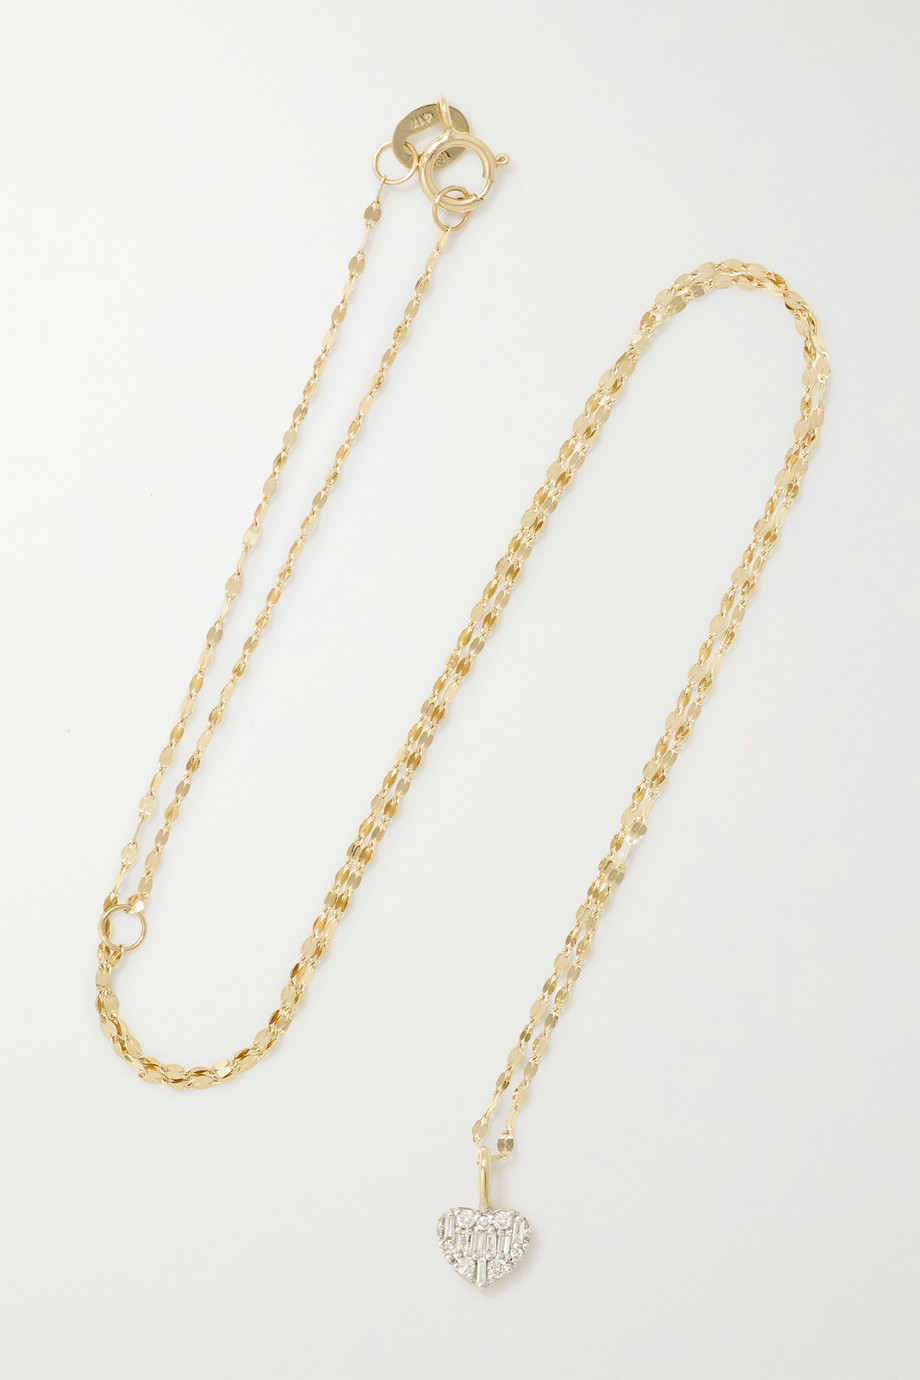 STONE AND STRAND Heart of the Matter gold diamond necklace